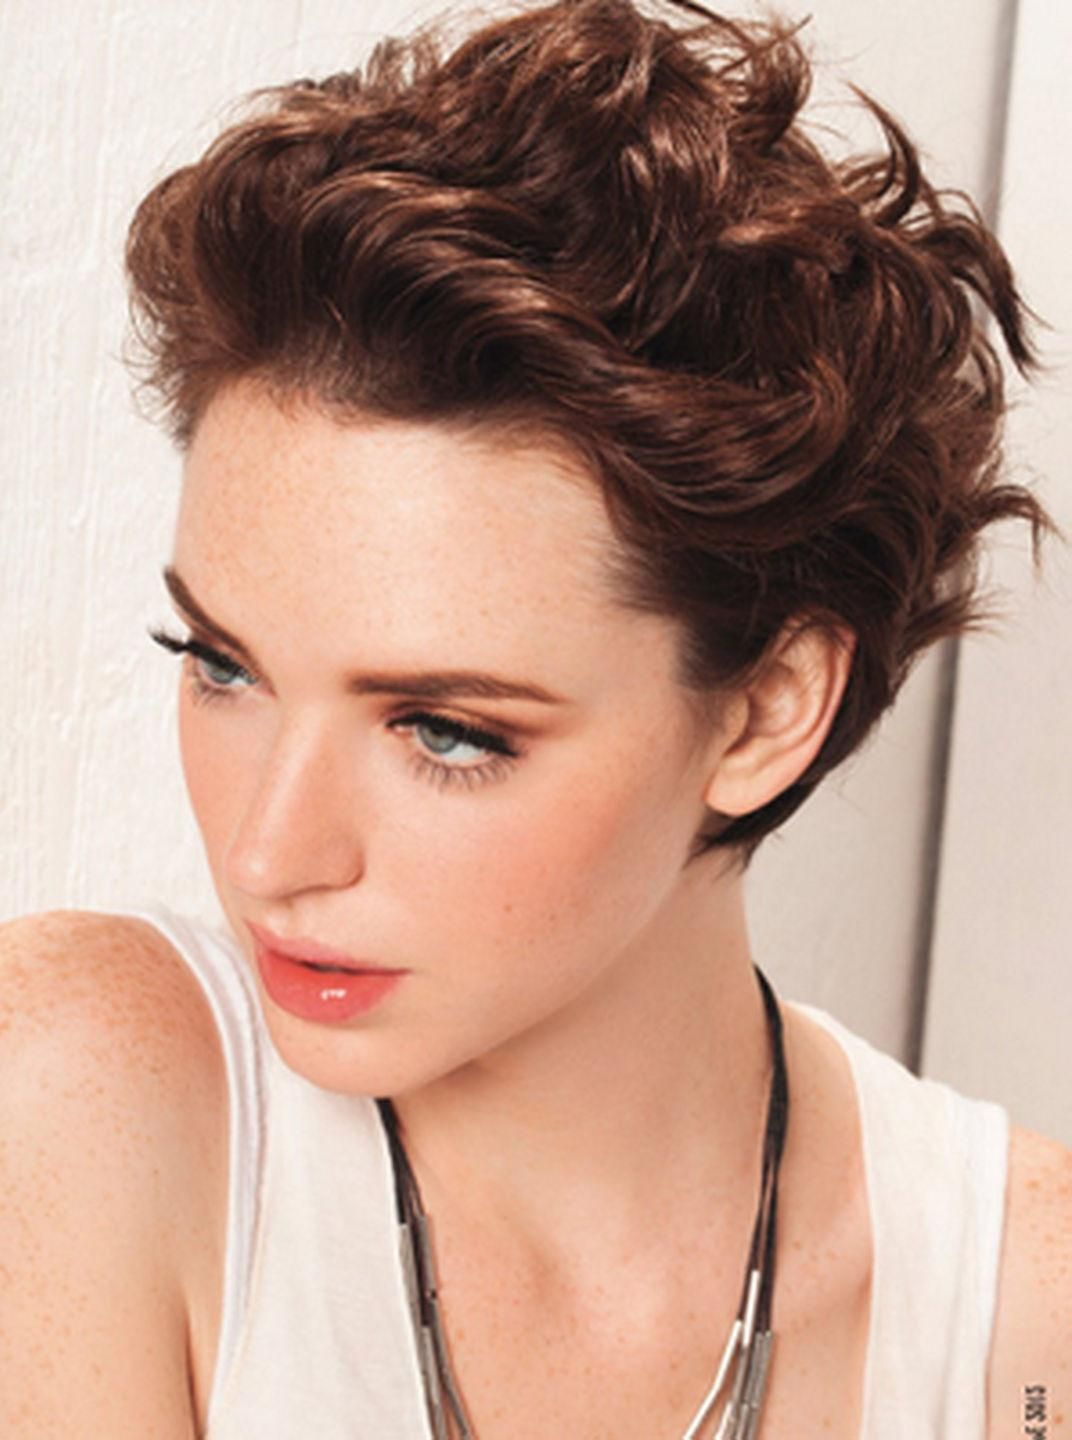 Short Hairstyles For Curly Hair And Oval Face Cute Short